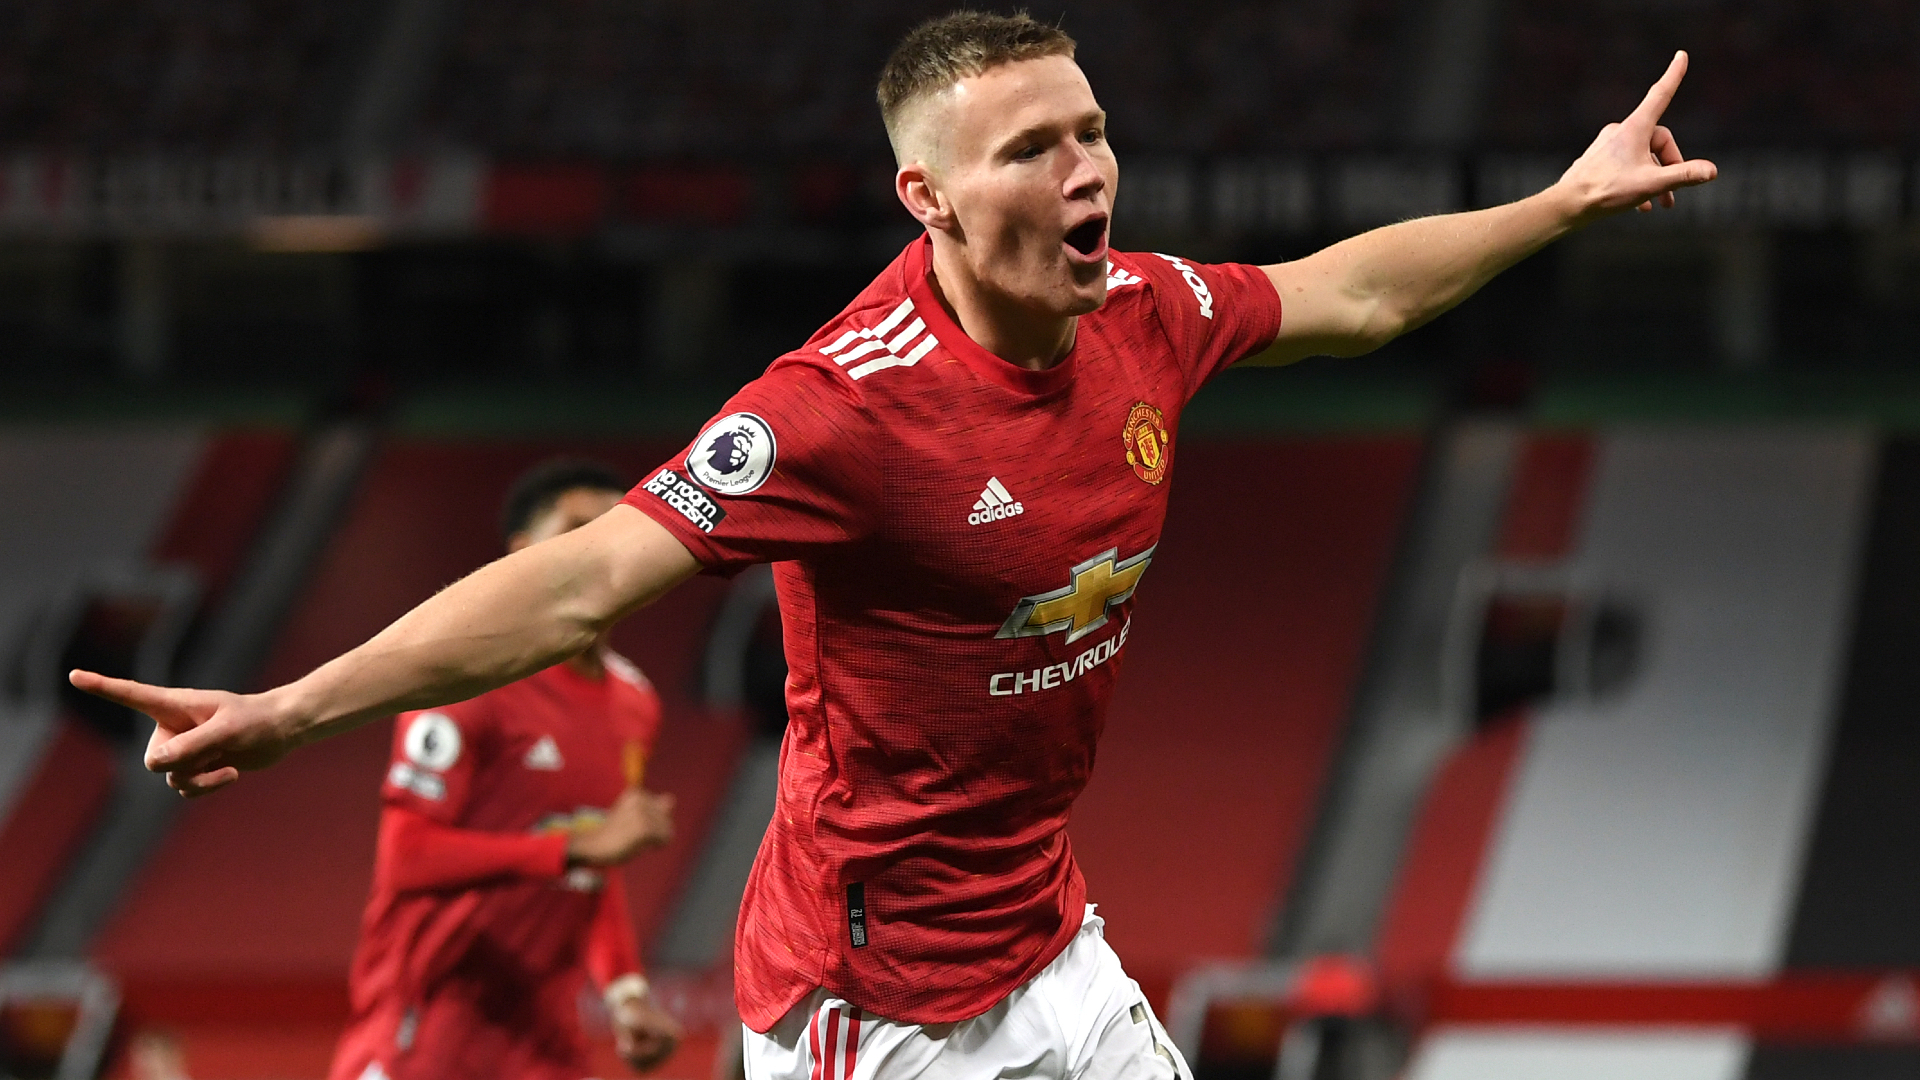 Man Utd's McTominay makes history with early double strike against Leeds |  Goal.com